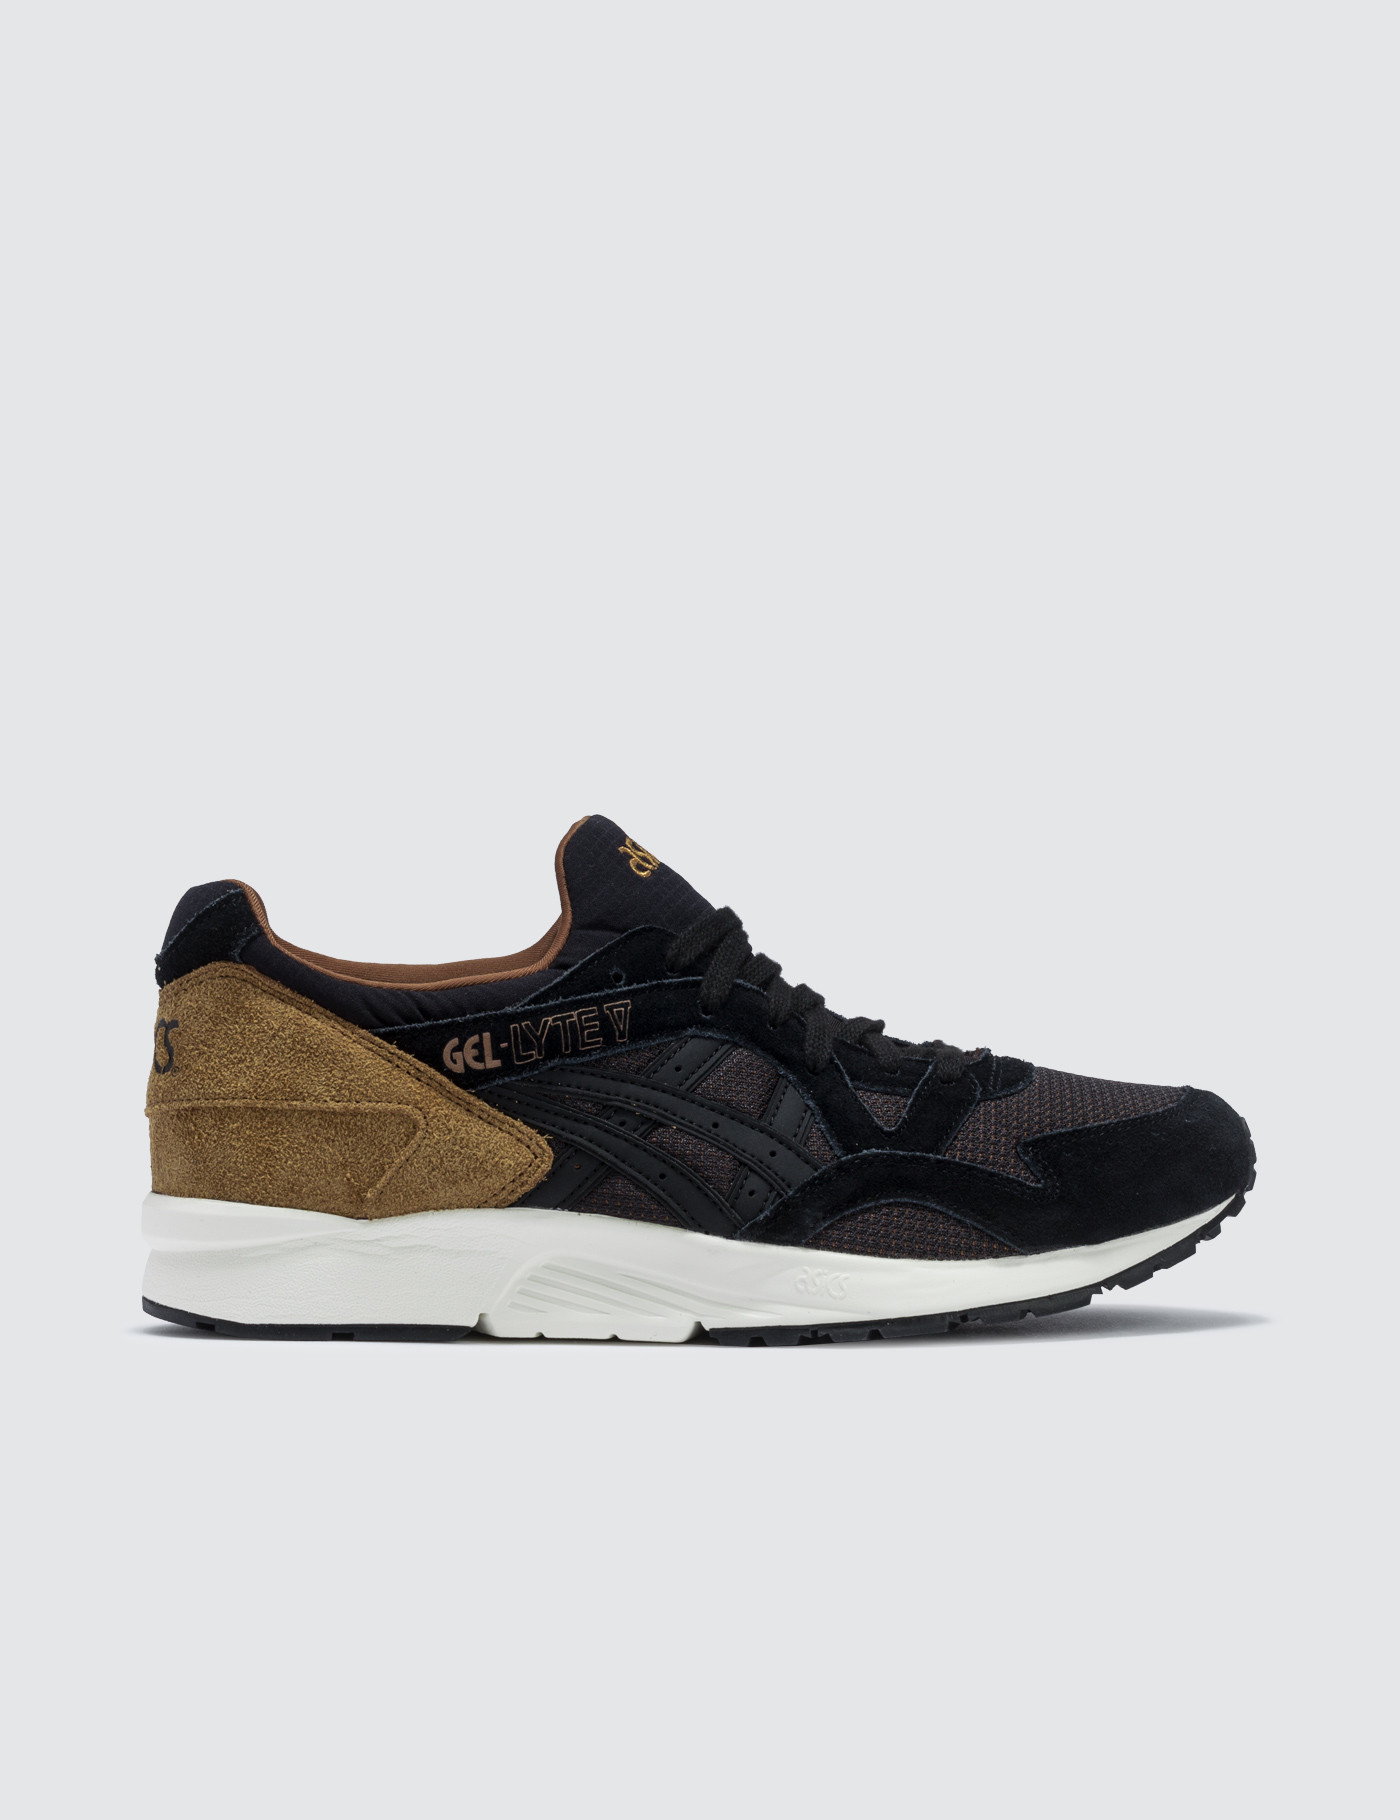 plus récent 344e3 36b57 Gel-Lyte V, ASICS